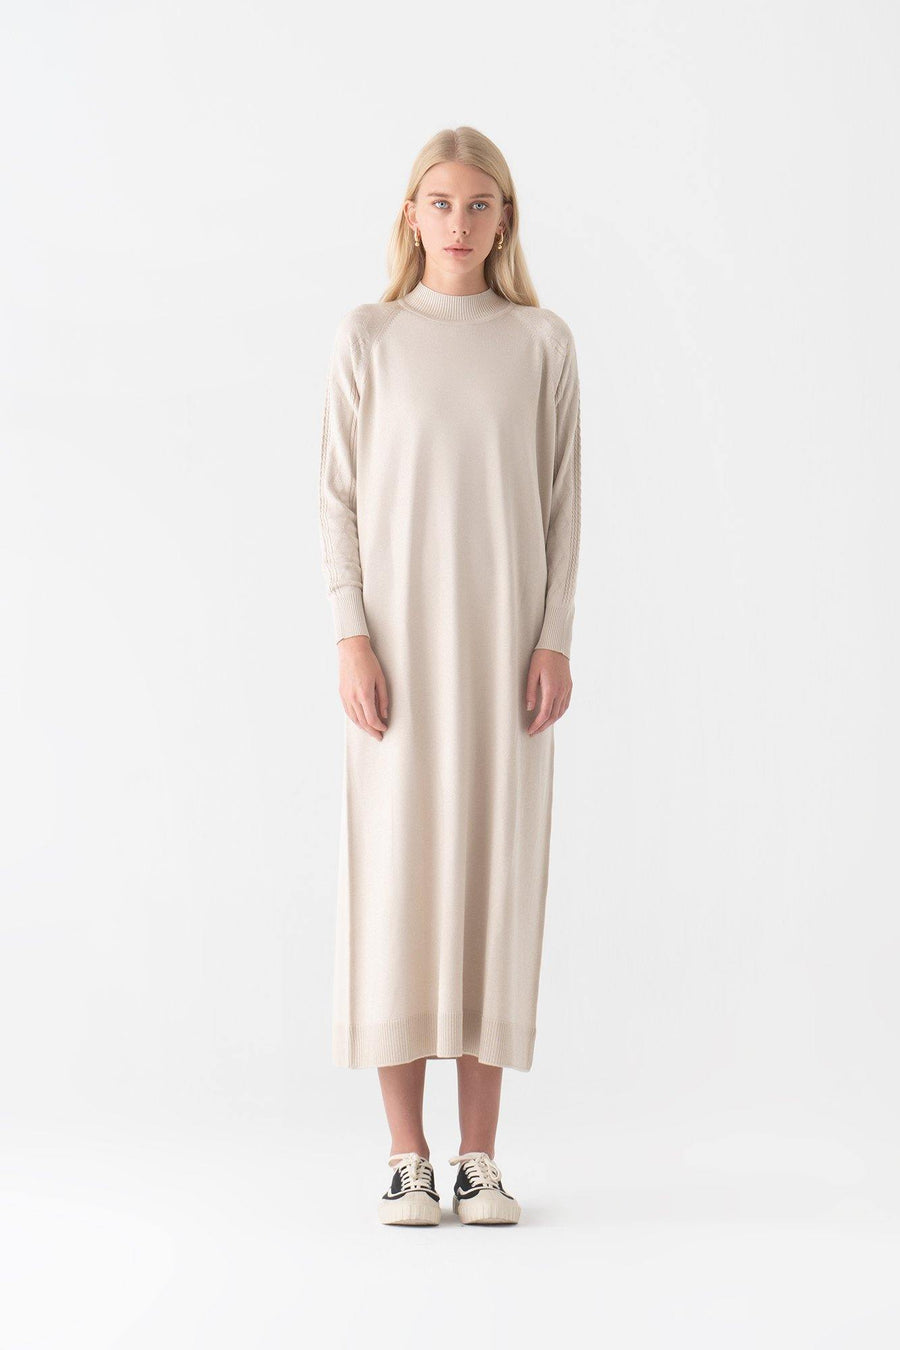 Knit Dress With Neckband